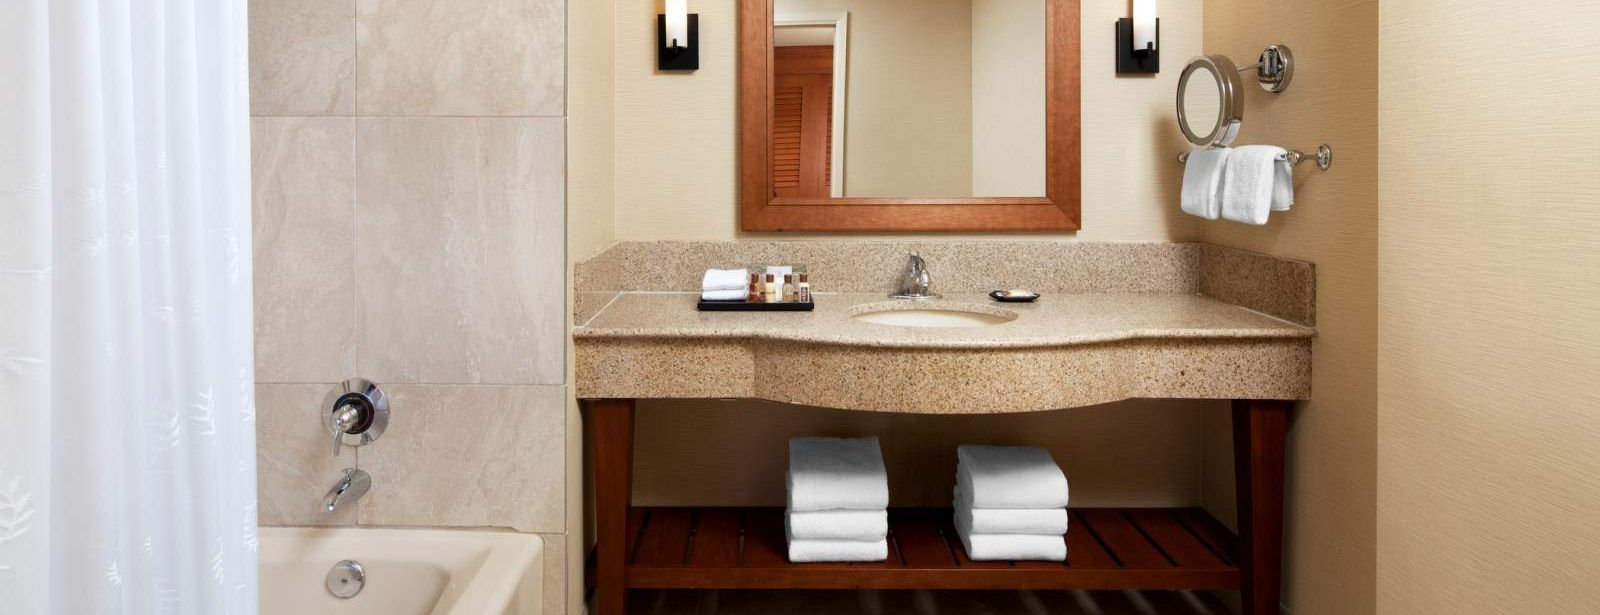 Traditional Room Bathroom - Sheraton La Jolla